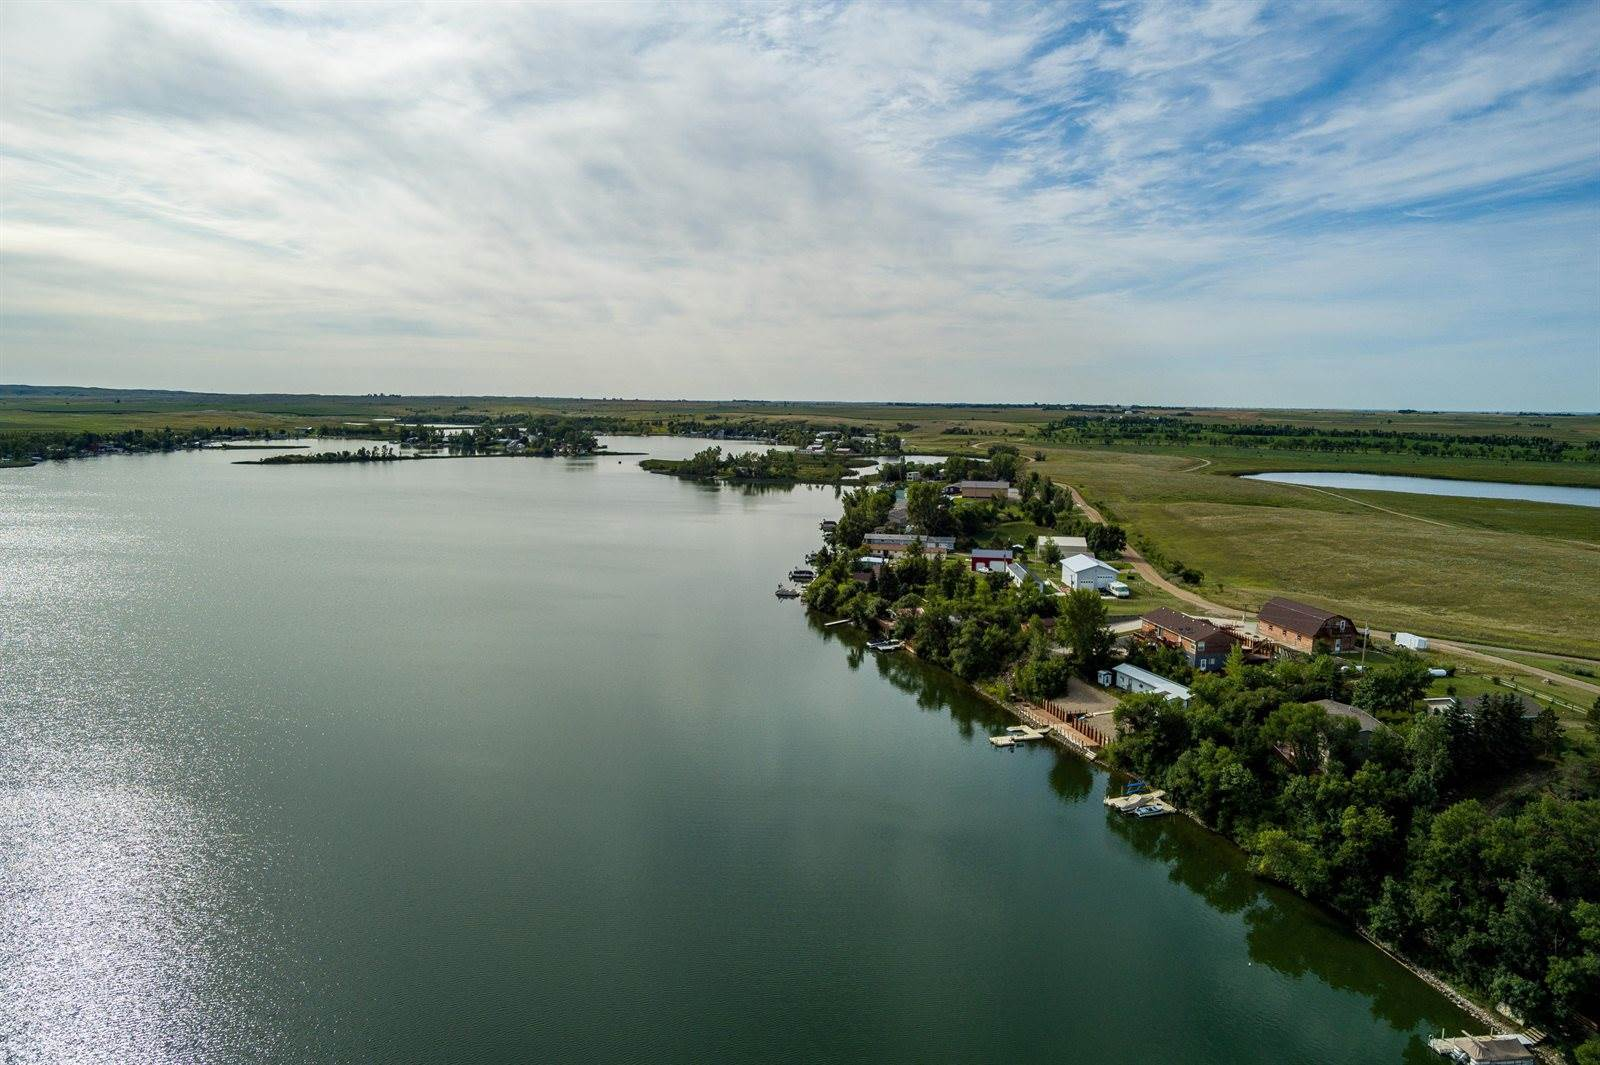 114/115 Brush Lake, Brush Lake, ND 58559